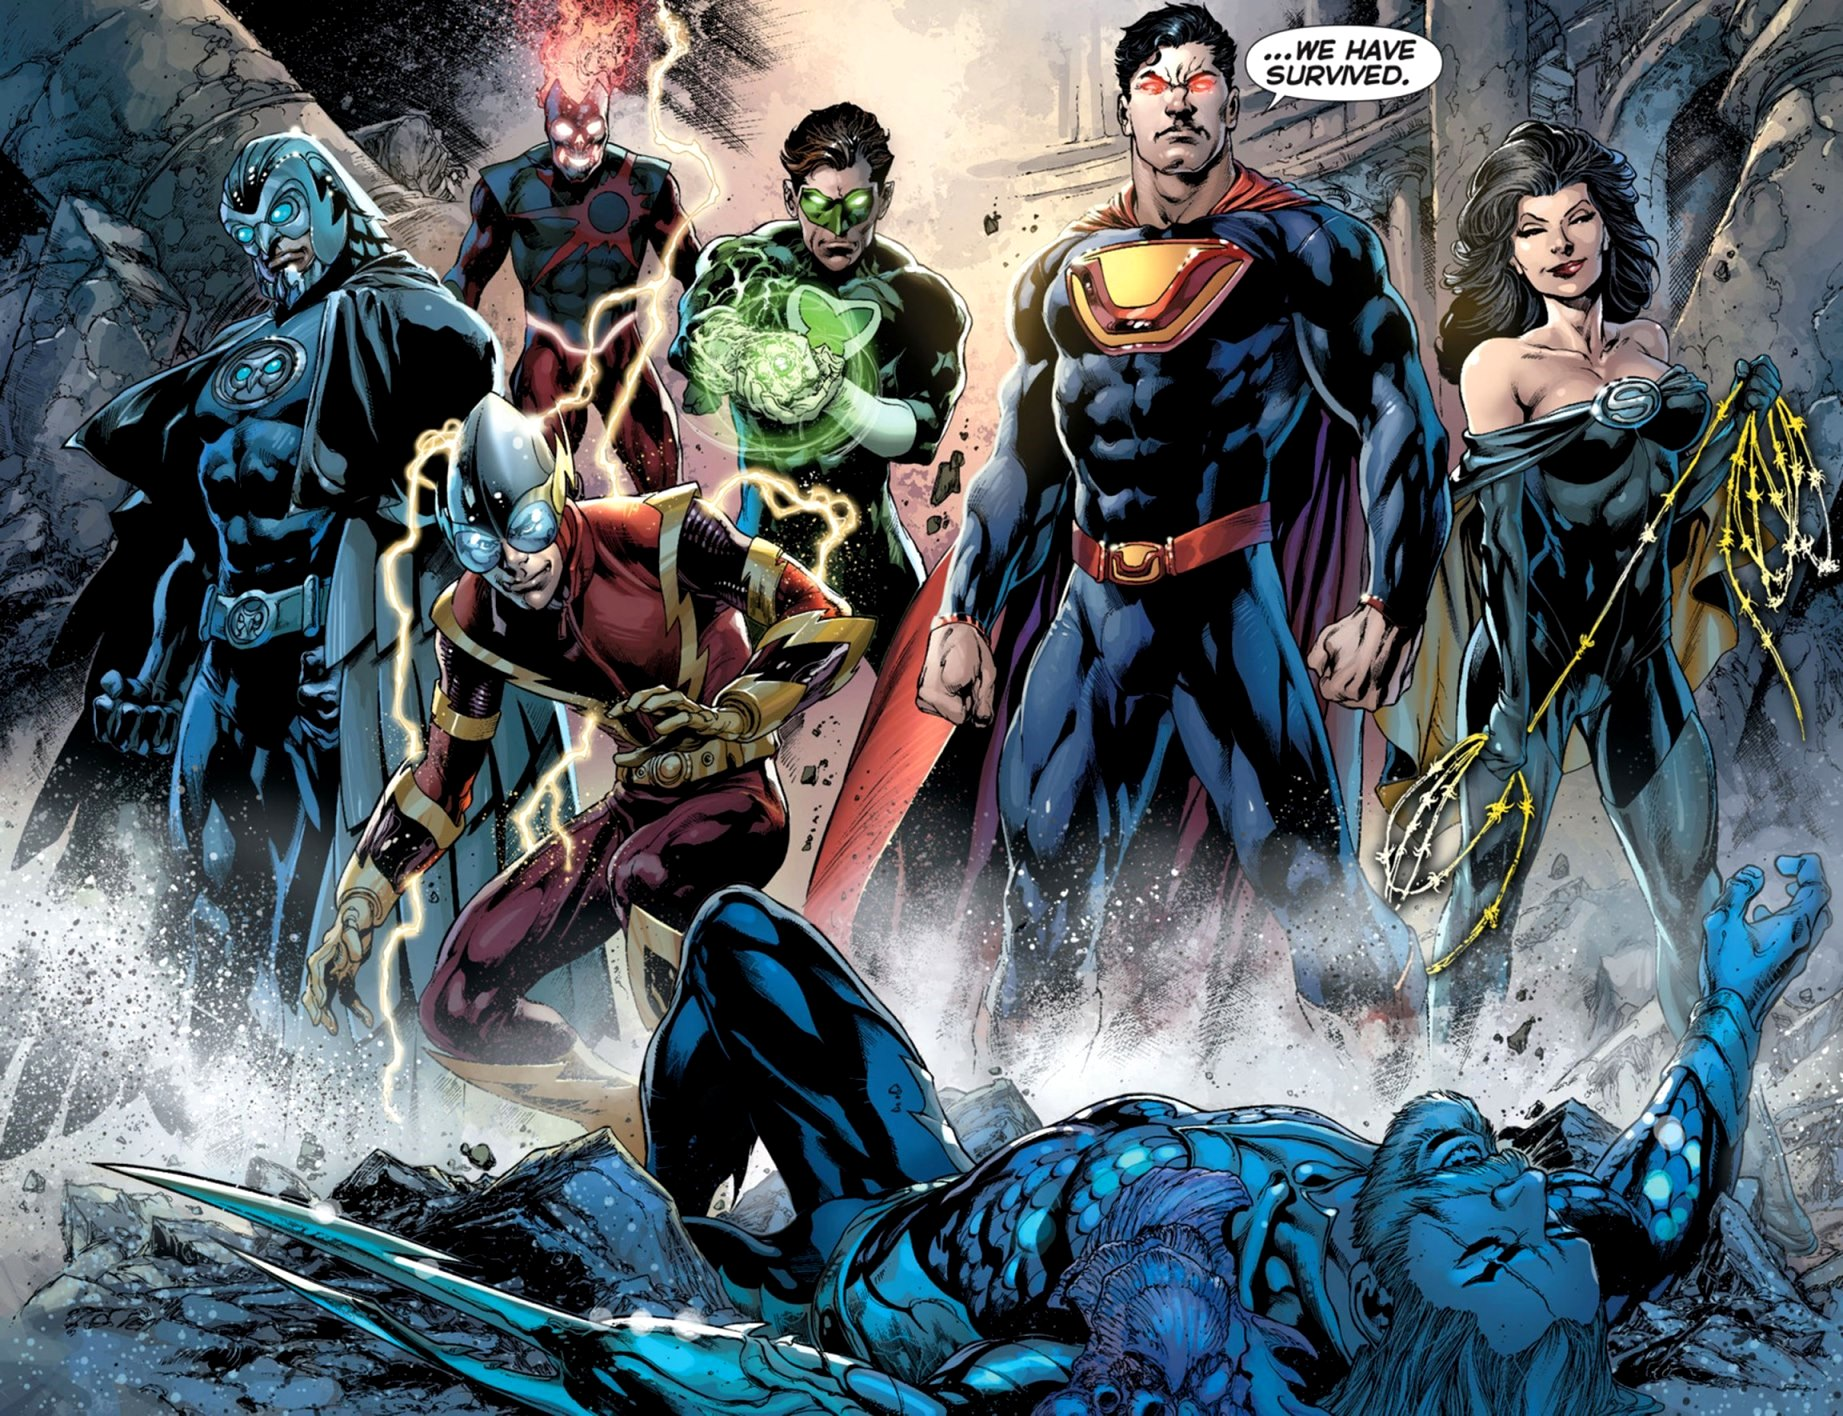 http://img4.wikia.nocookie.net/__cb20130902185730/marvel_dc/images/8/85/Crime_Syndicate_New_52_0001.jpg